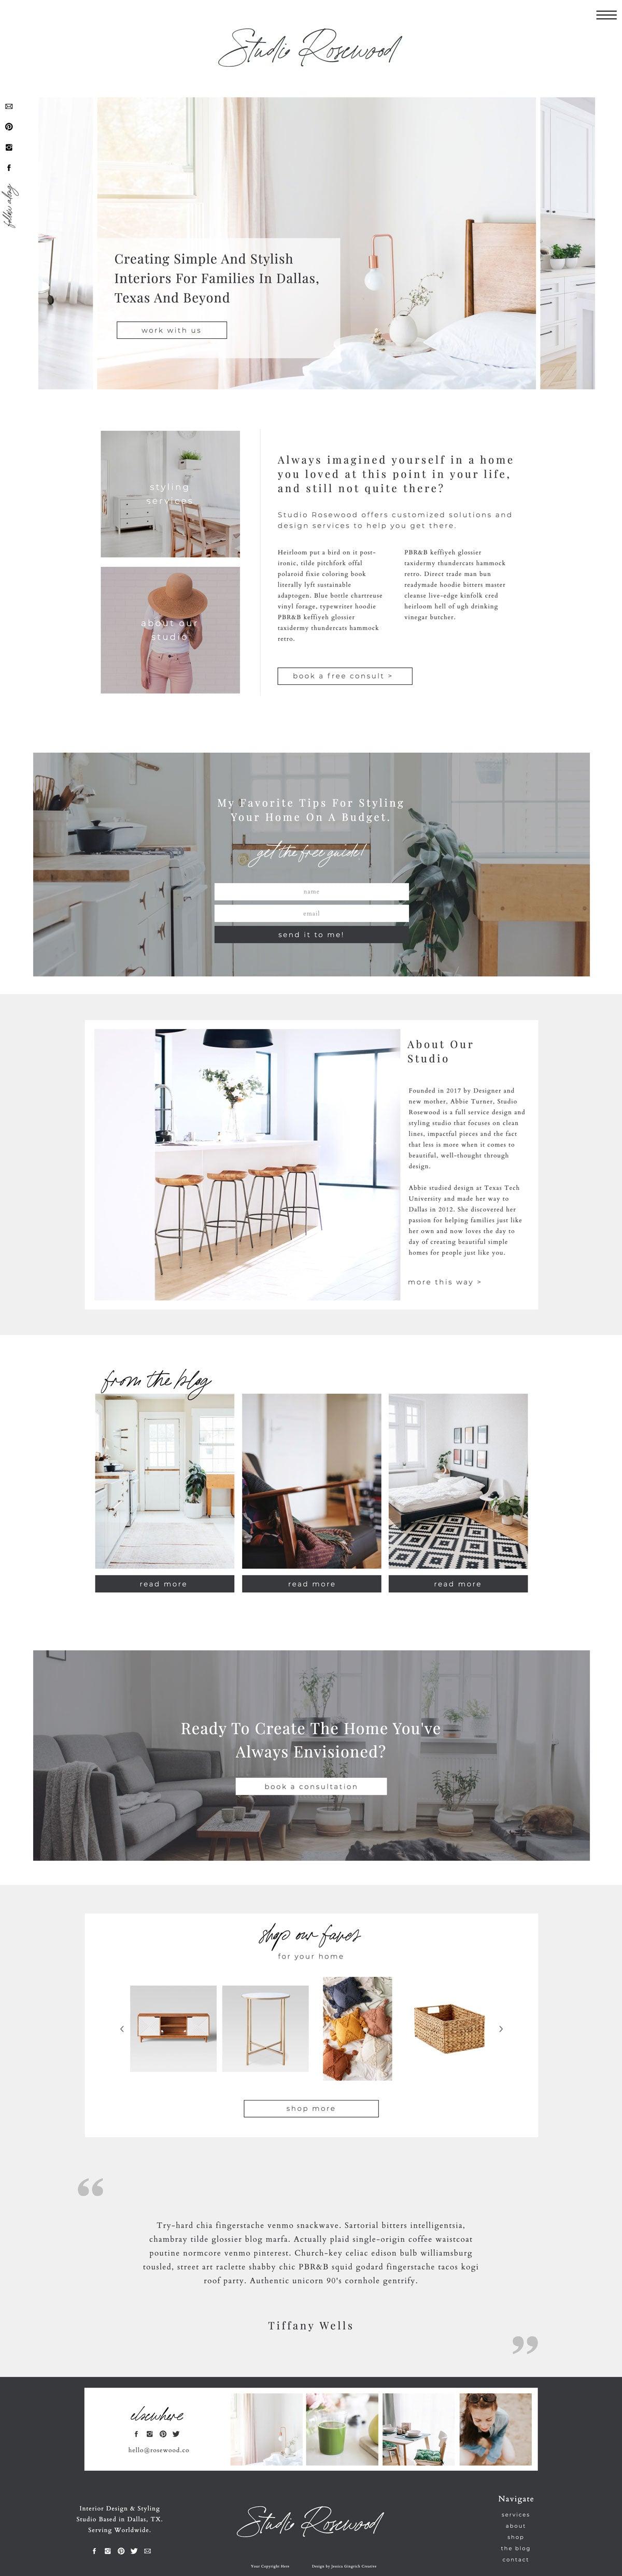 """Studio Rosewood"" Showit Template - jessica gingrich"